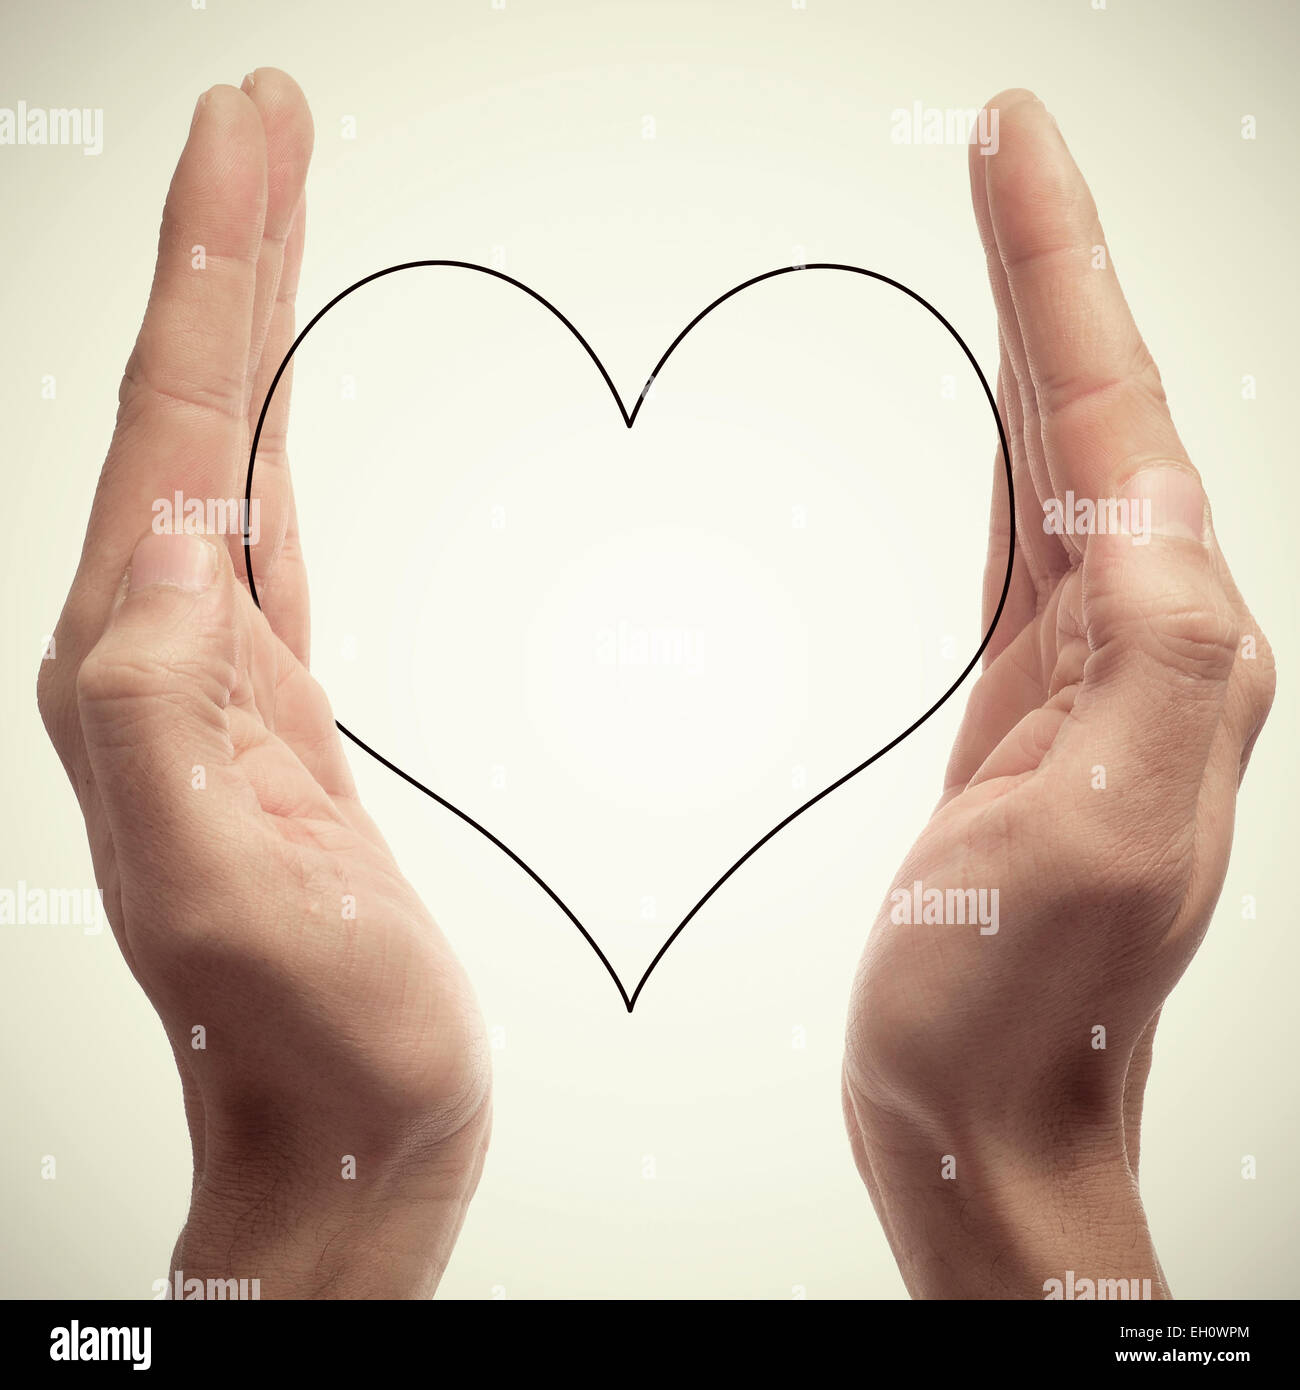 man hands holding a silhouette of a heart, with a retro effect - Stock Image